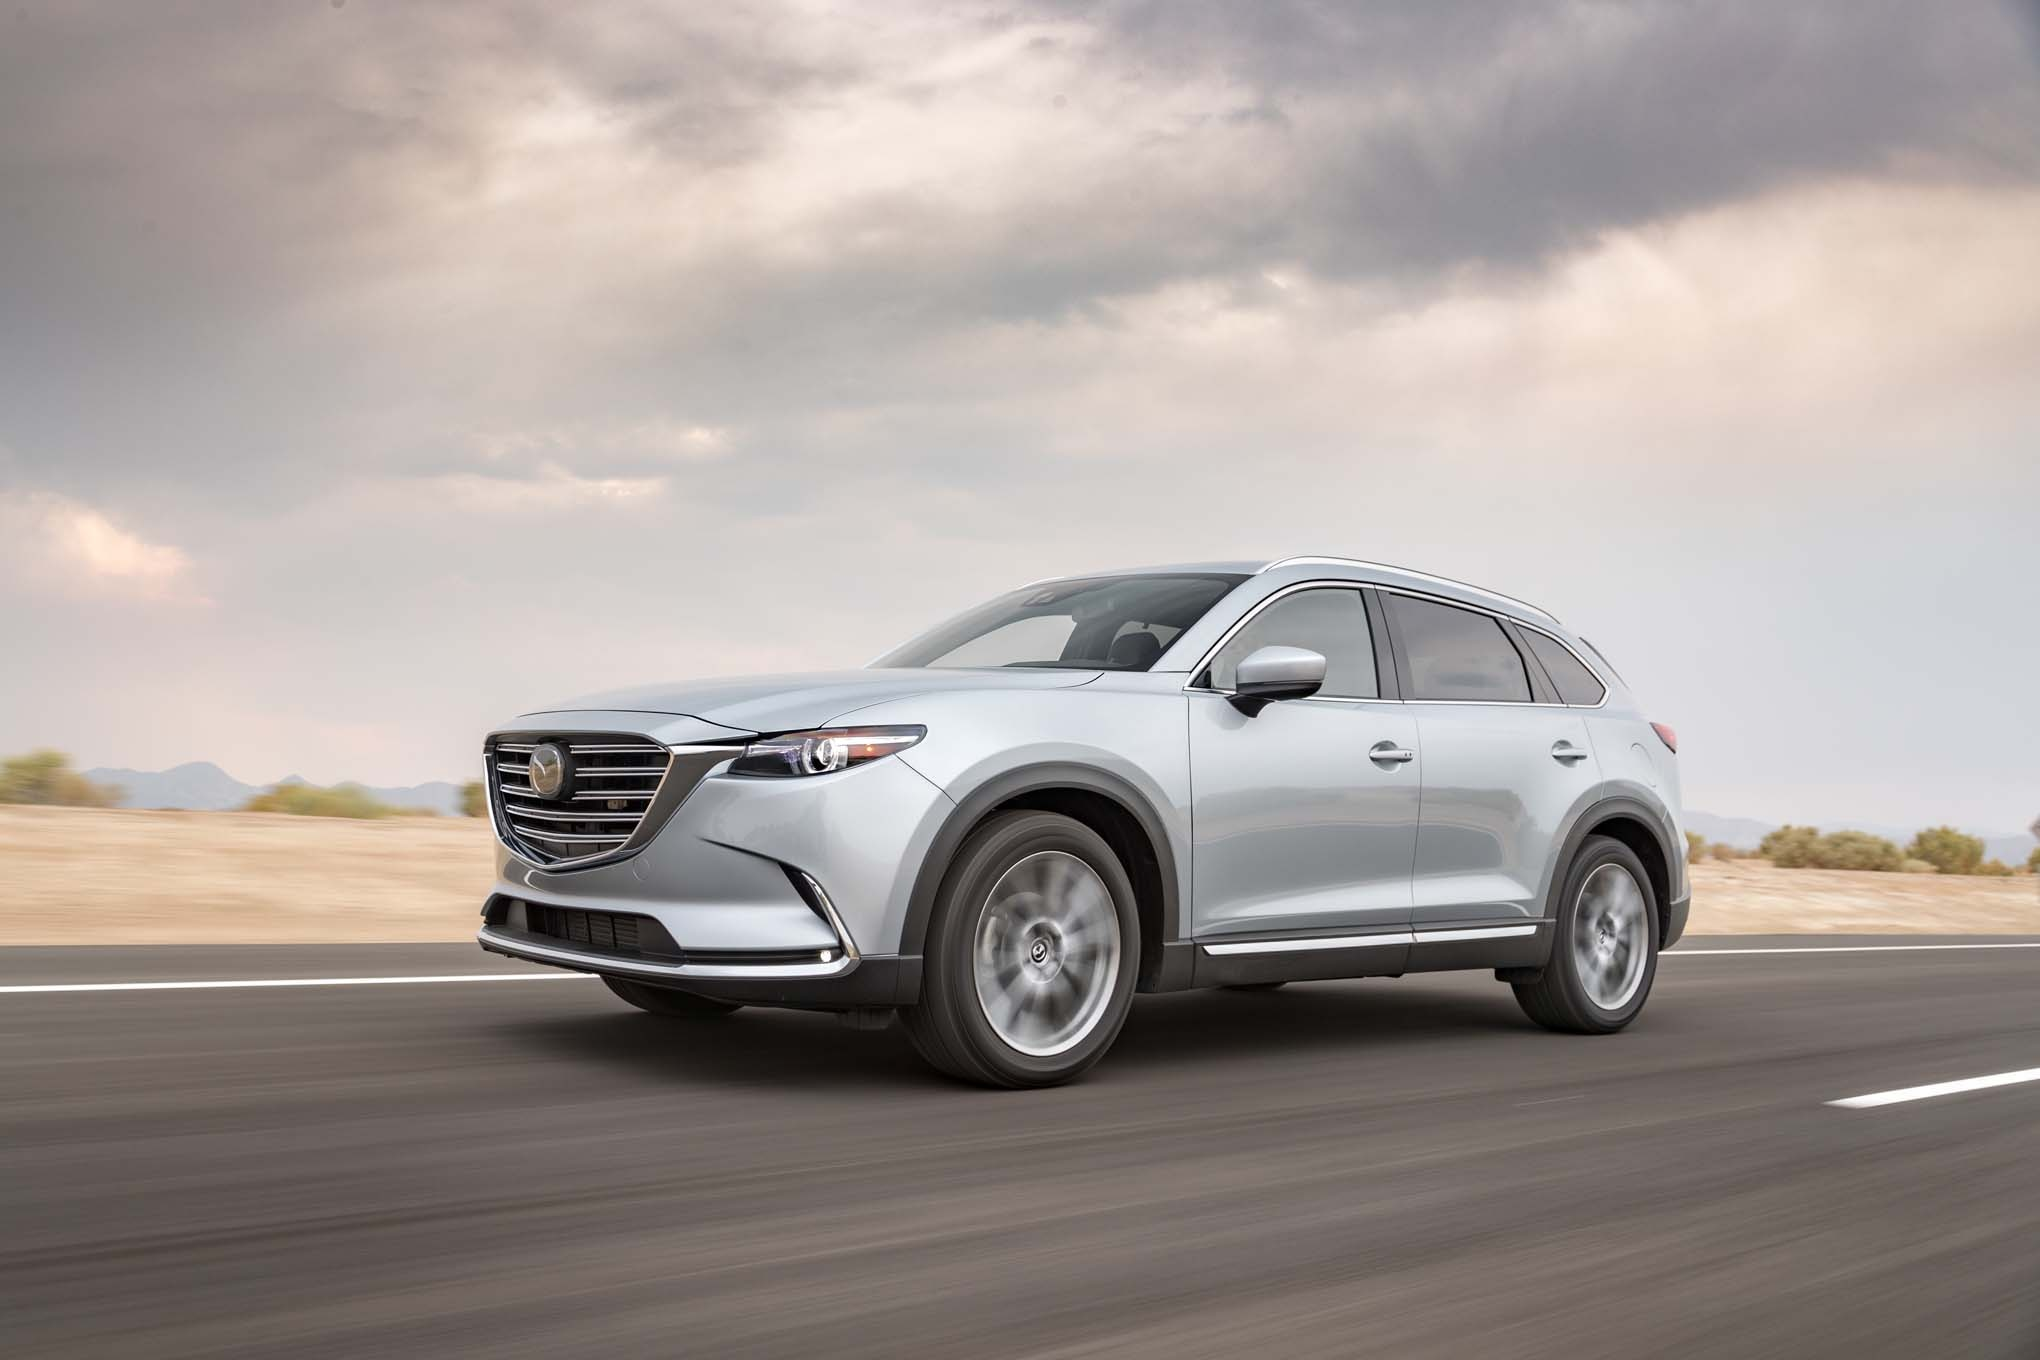 2016 Mazda CX 9 AWD Signature front three quarter in motion 02